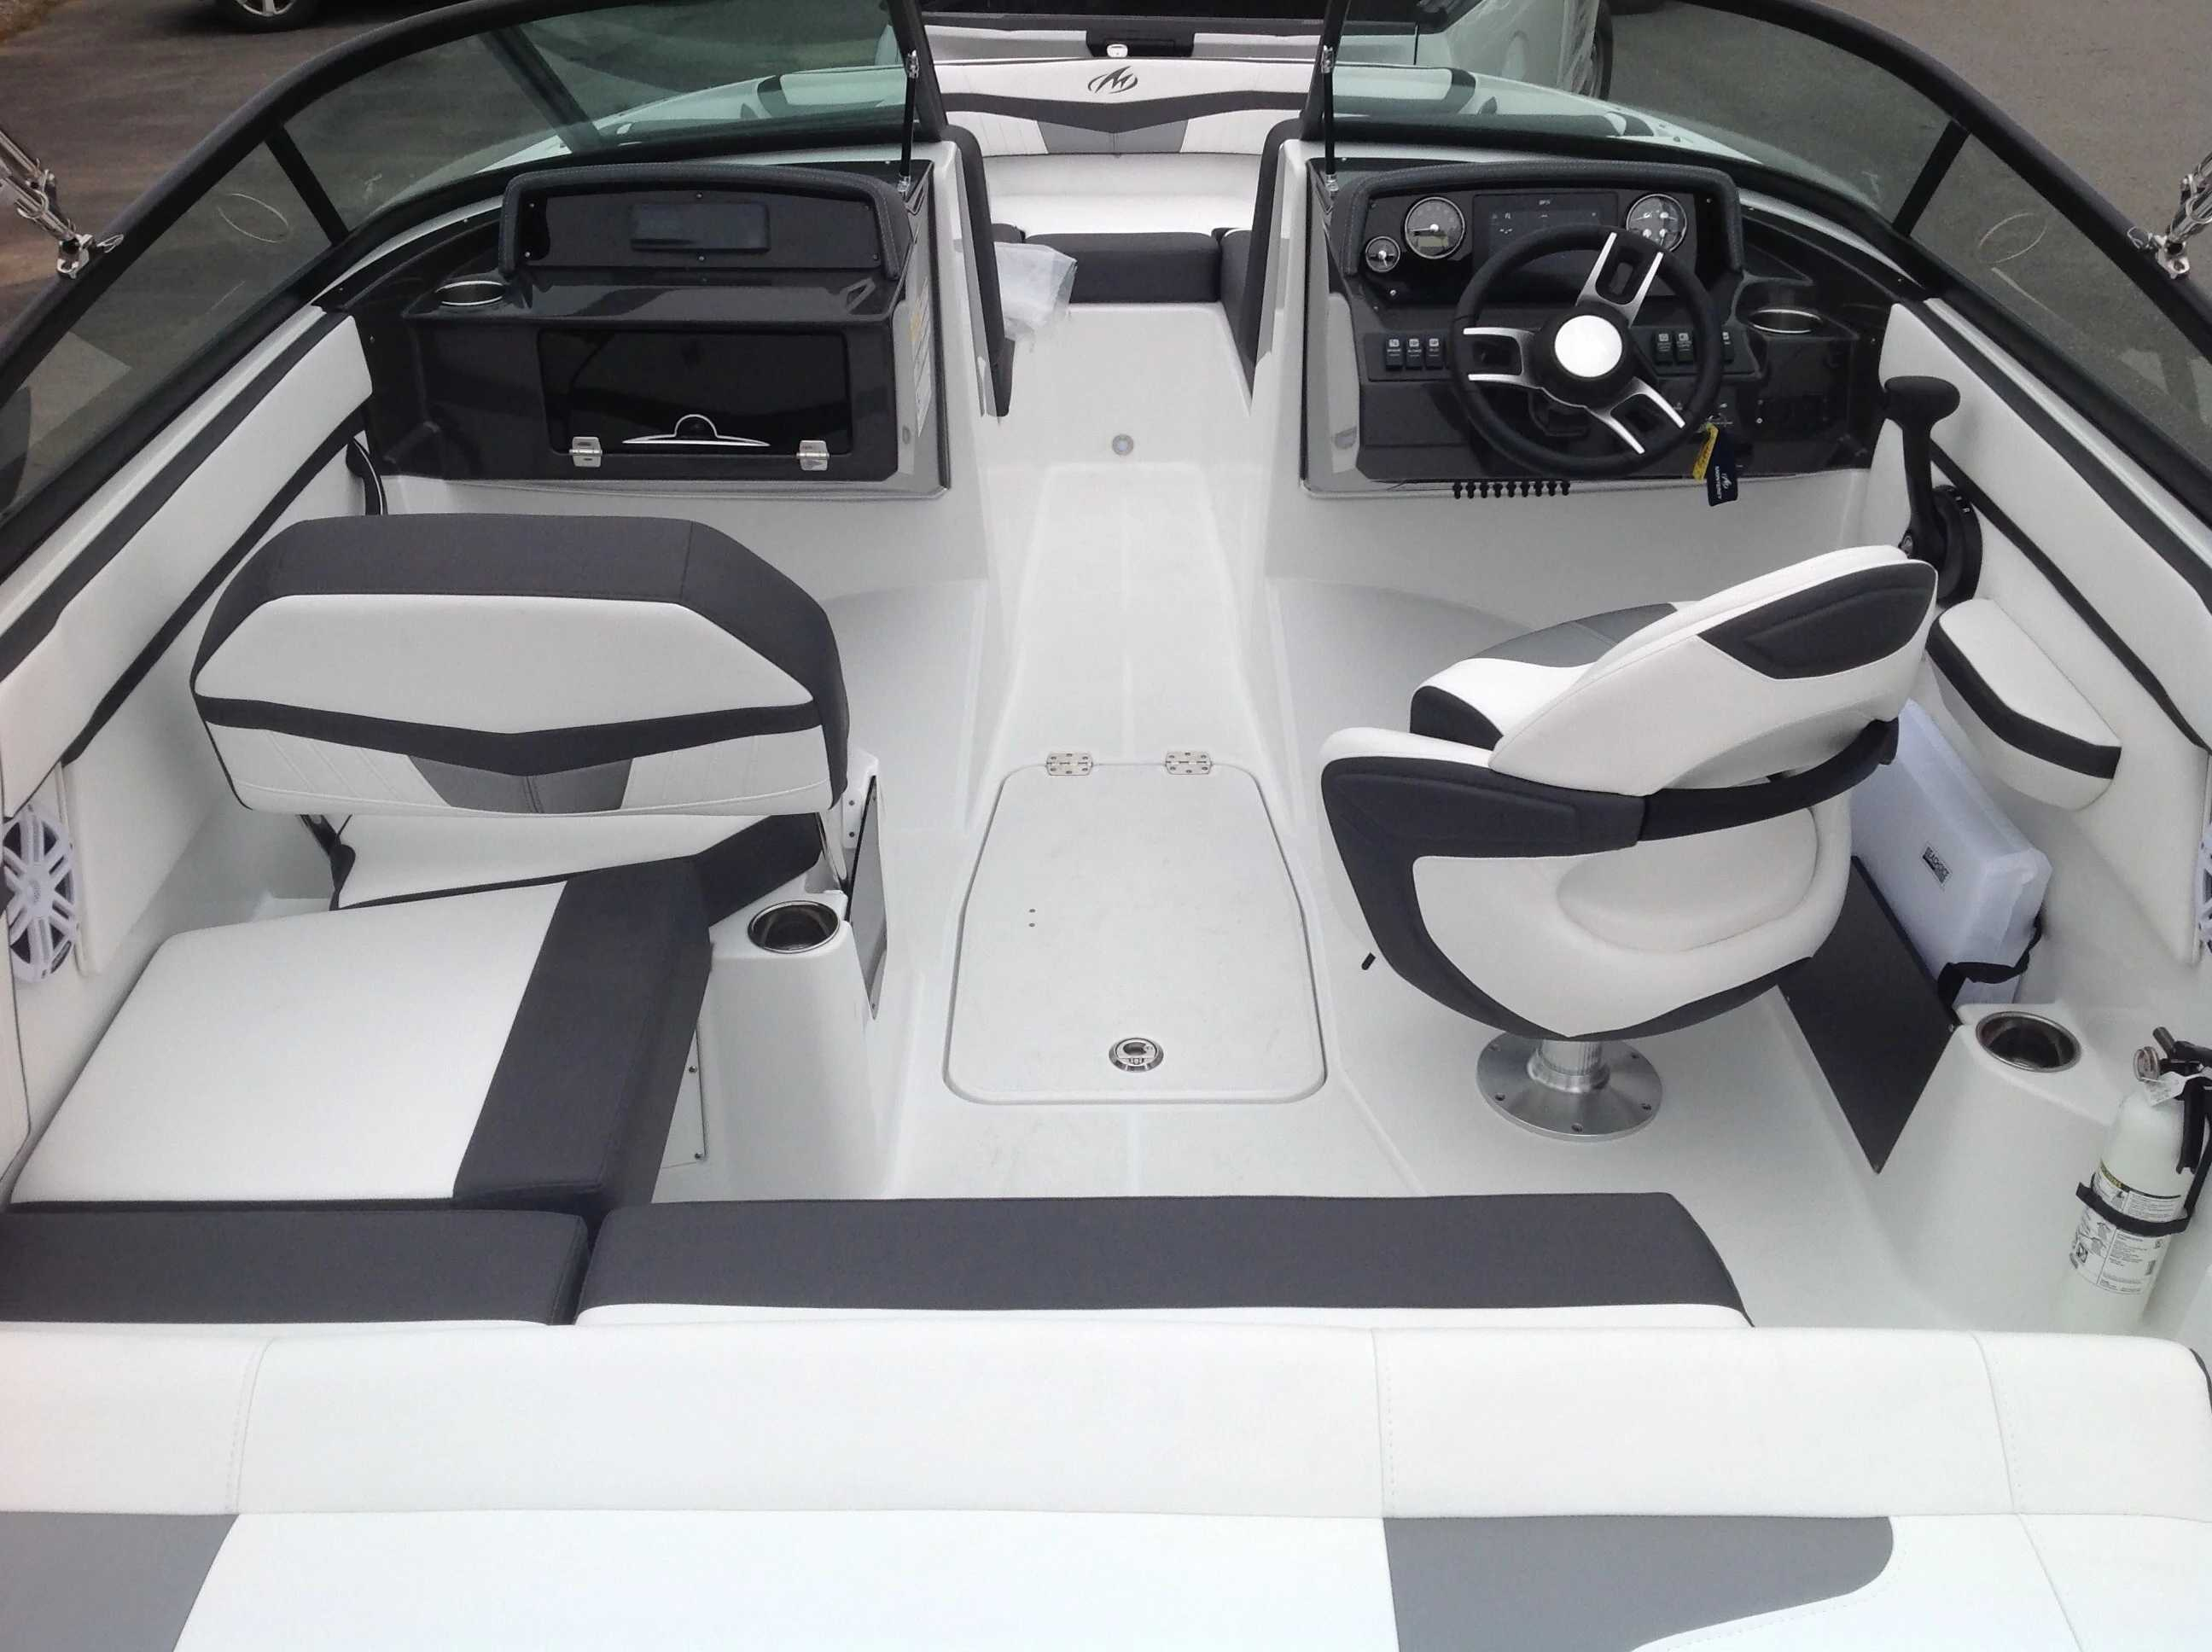 2021 Monterey boat for sale, model of the boat is M20 & Image # 11 of 13